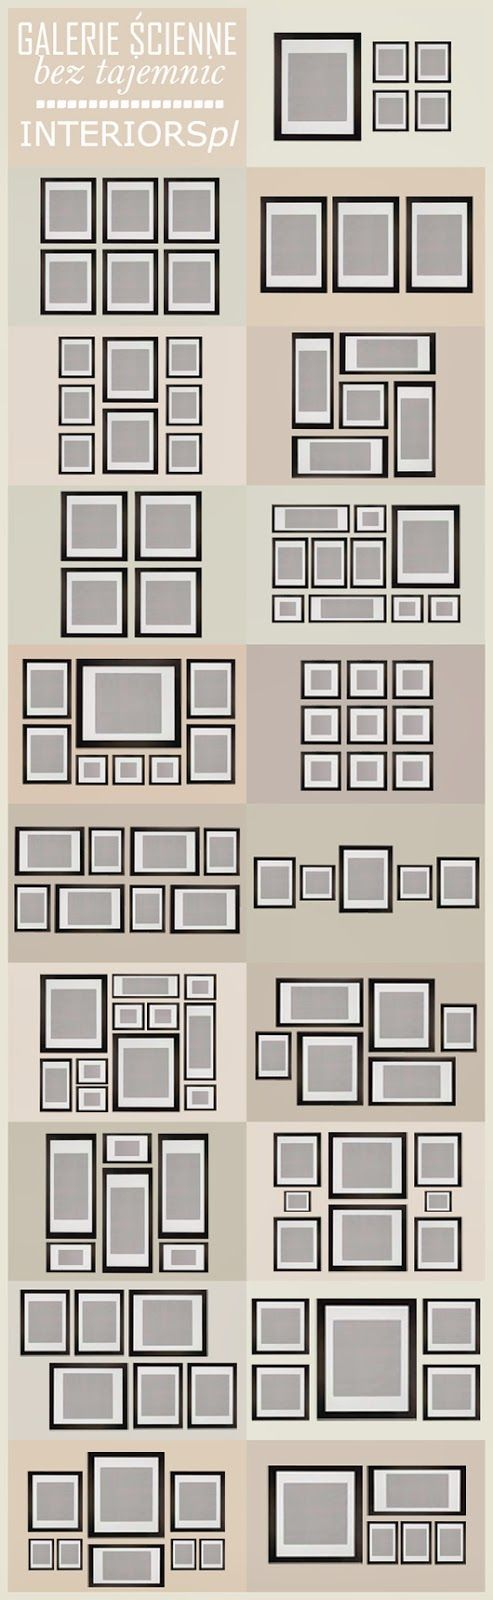 25 Best Ideas About Family Wall Photos On Pinterest Family Room Decorating Living Room Decorating Ideas And Picture Frame Decorating Ideas